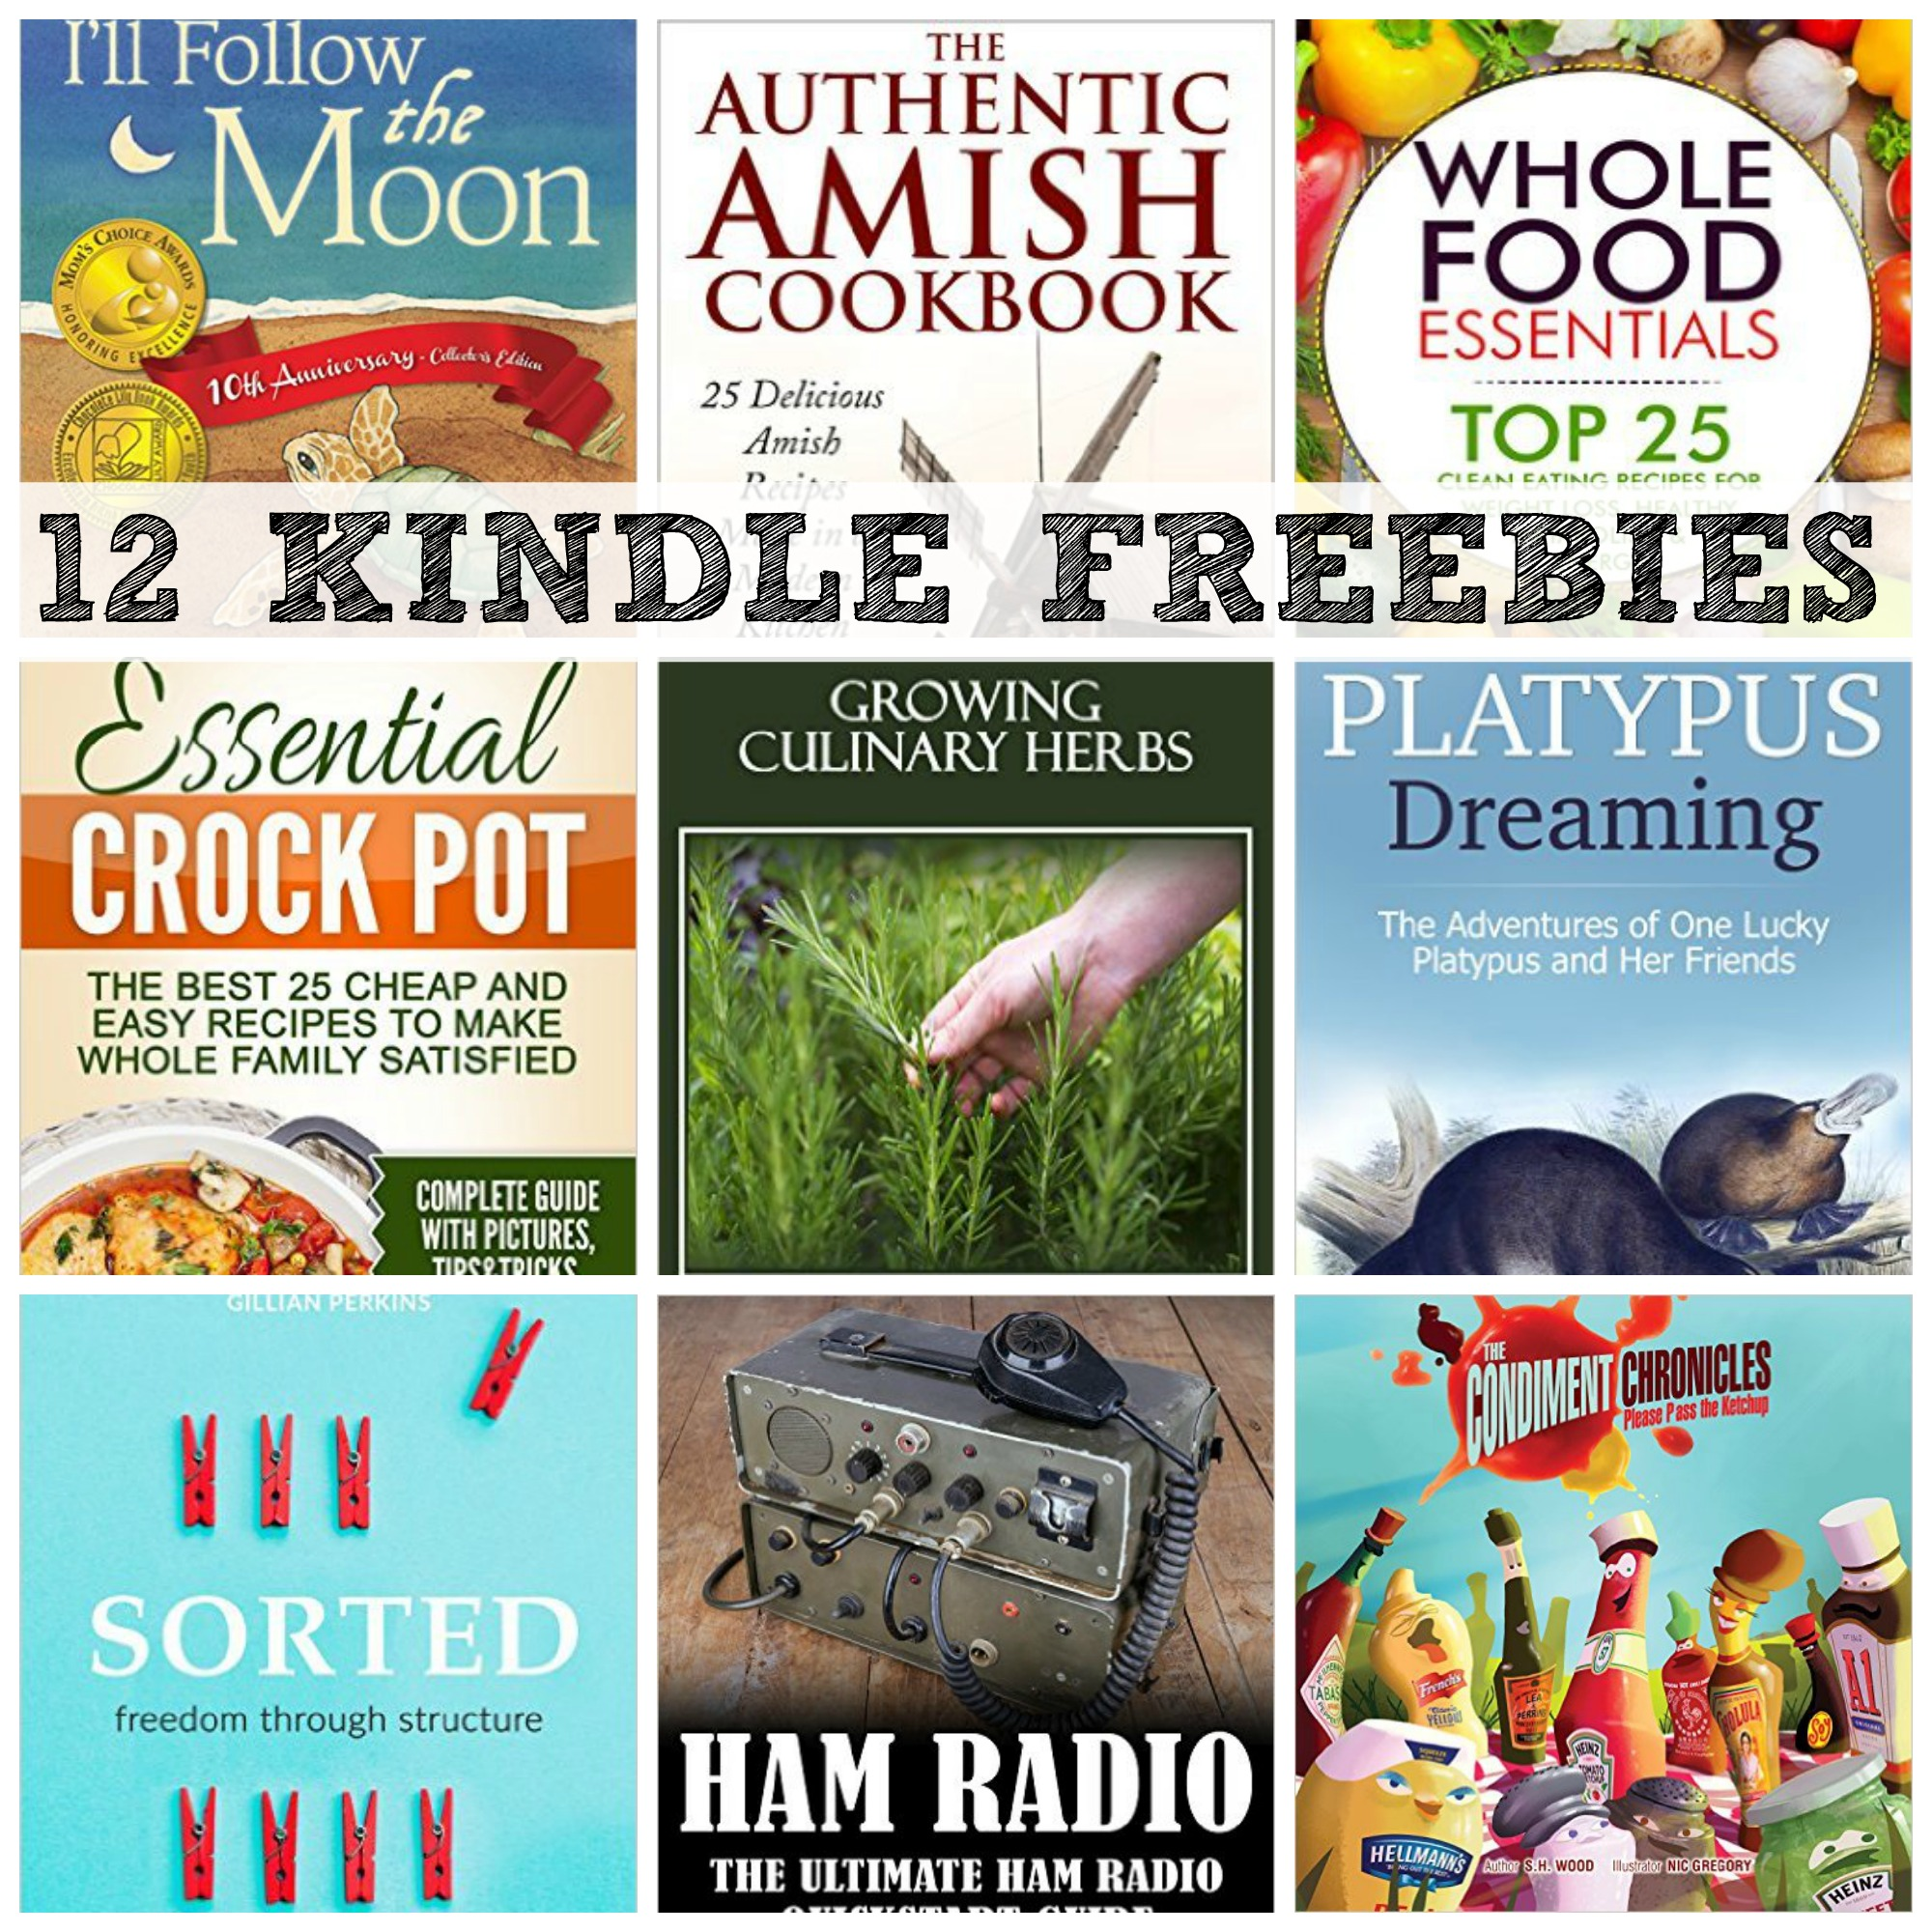 12 Kindle Freebies The Authentic Amish Cookbook How To